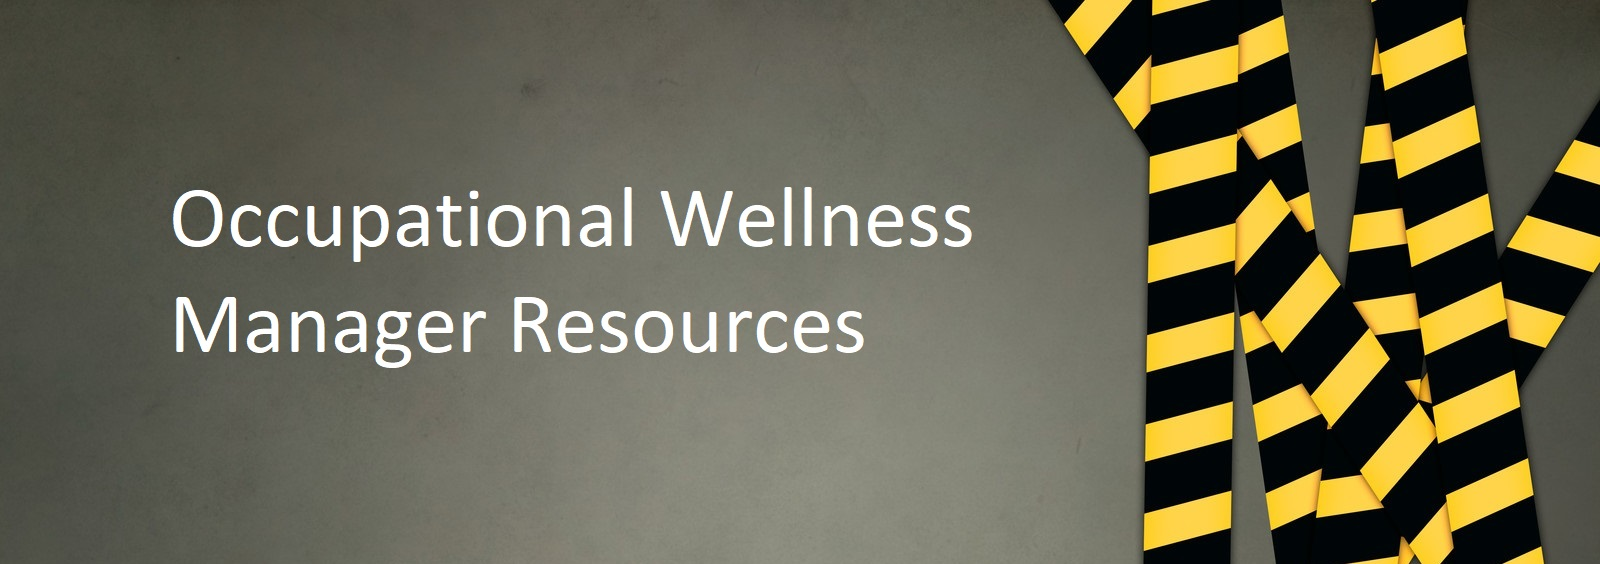 ABL's Occupational Wellness Manager